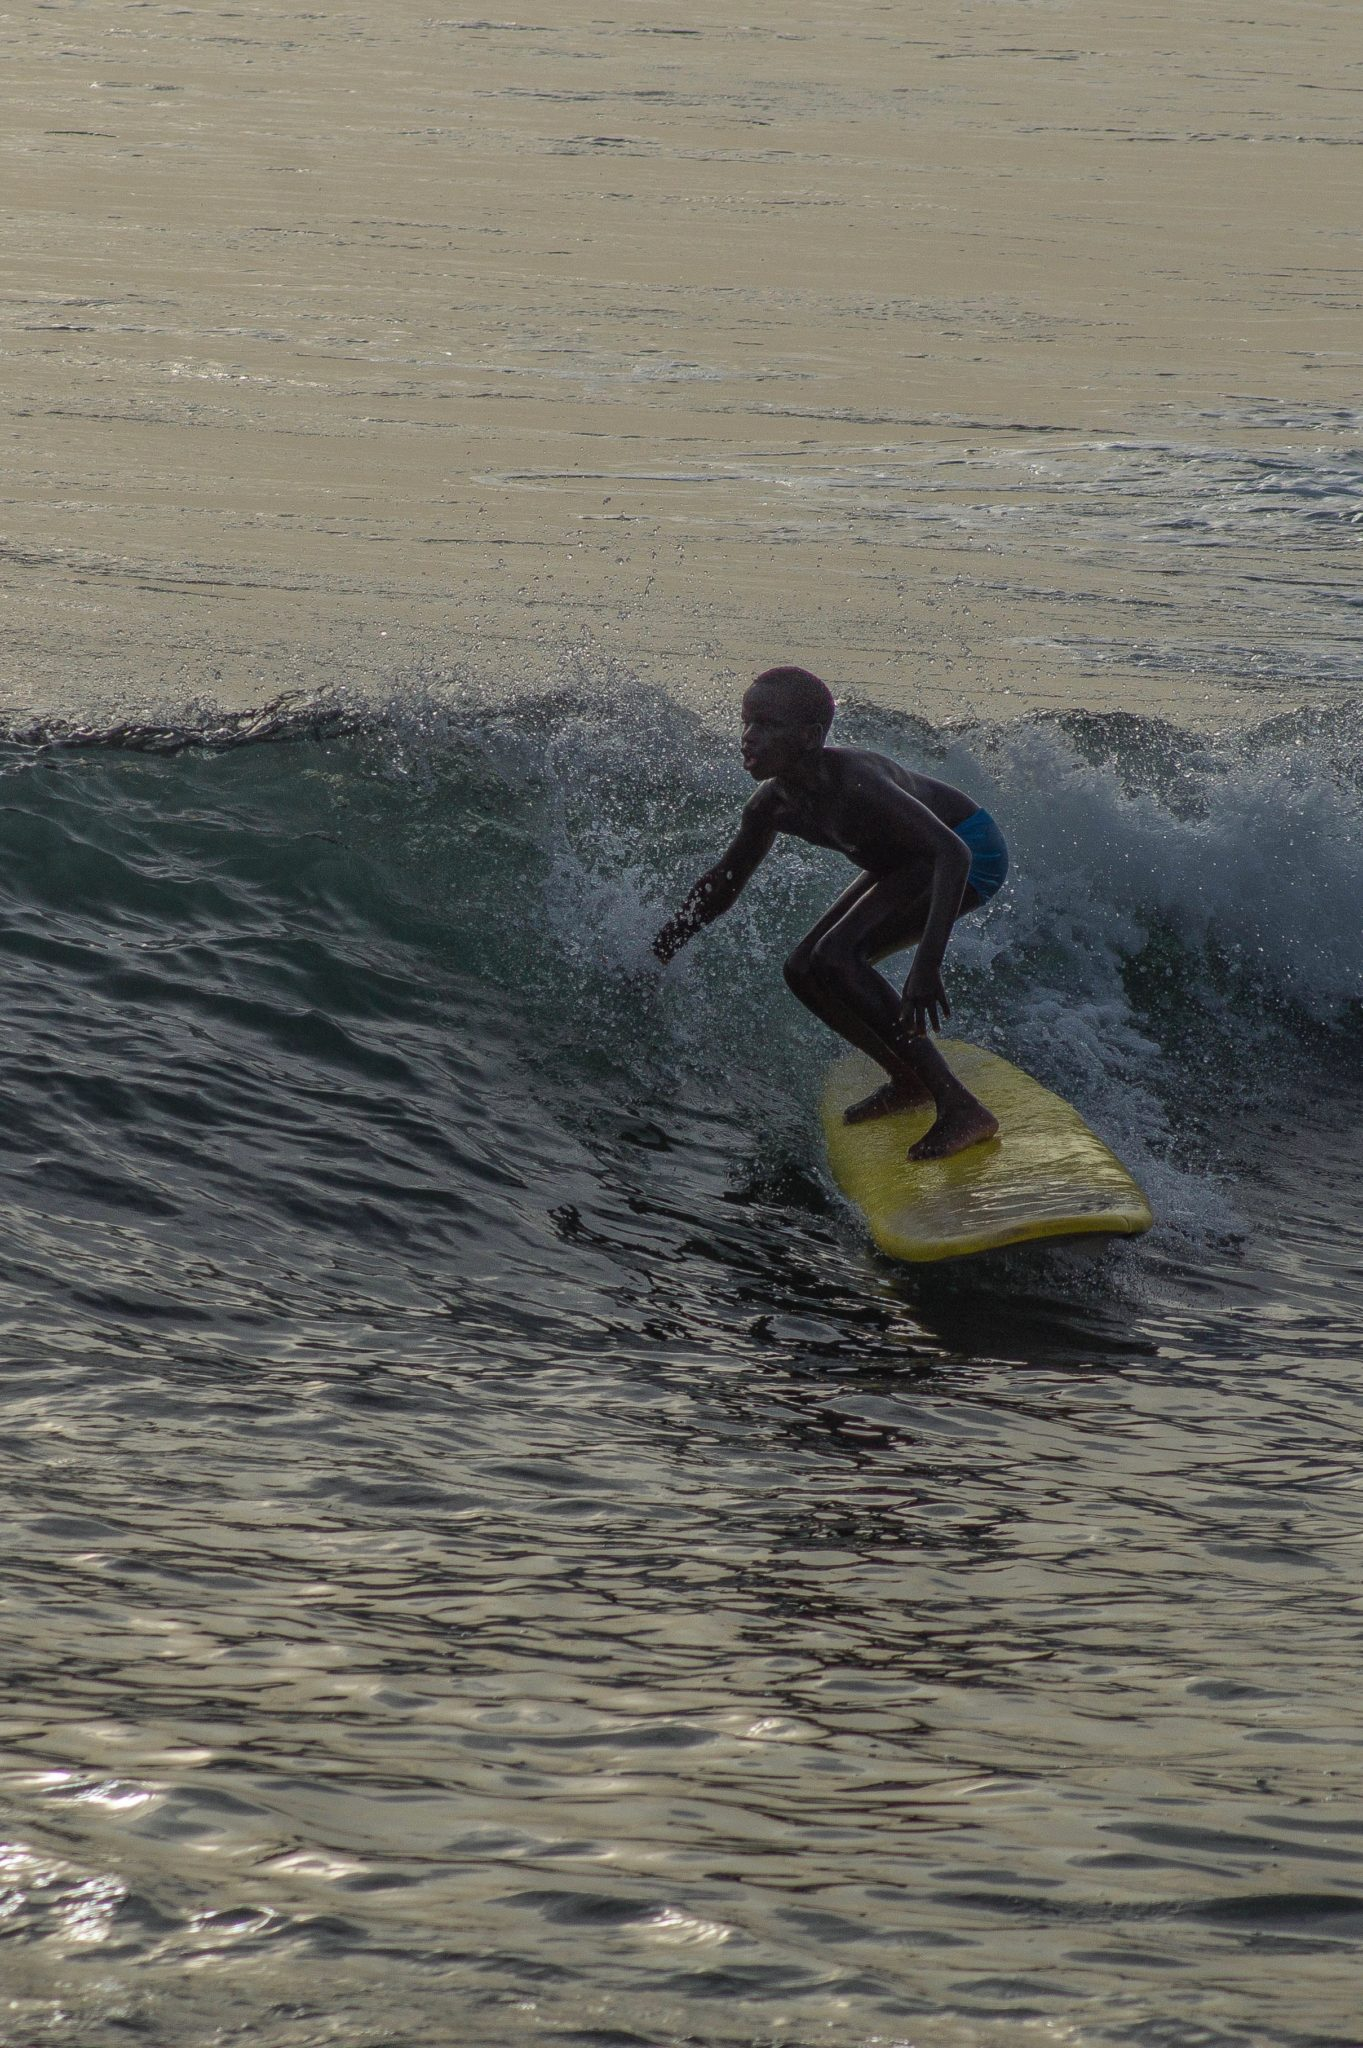 Senegal Surf: Waves in Senegal have a perfect size for both, beginners and intermediate surfers